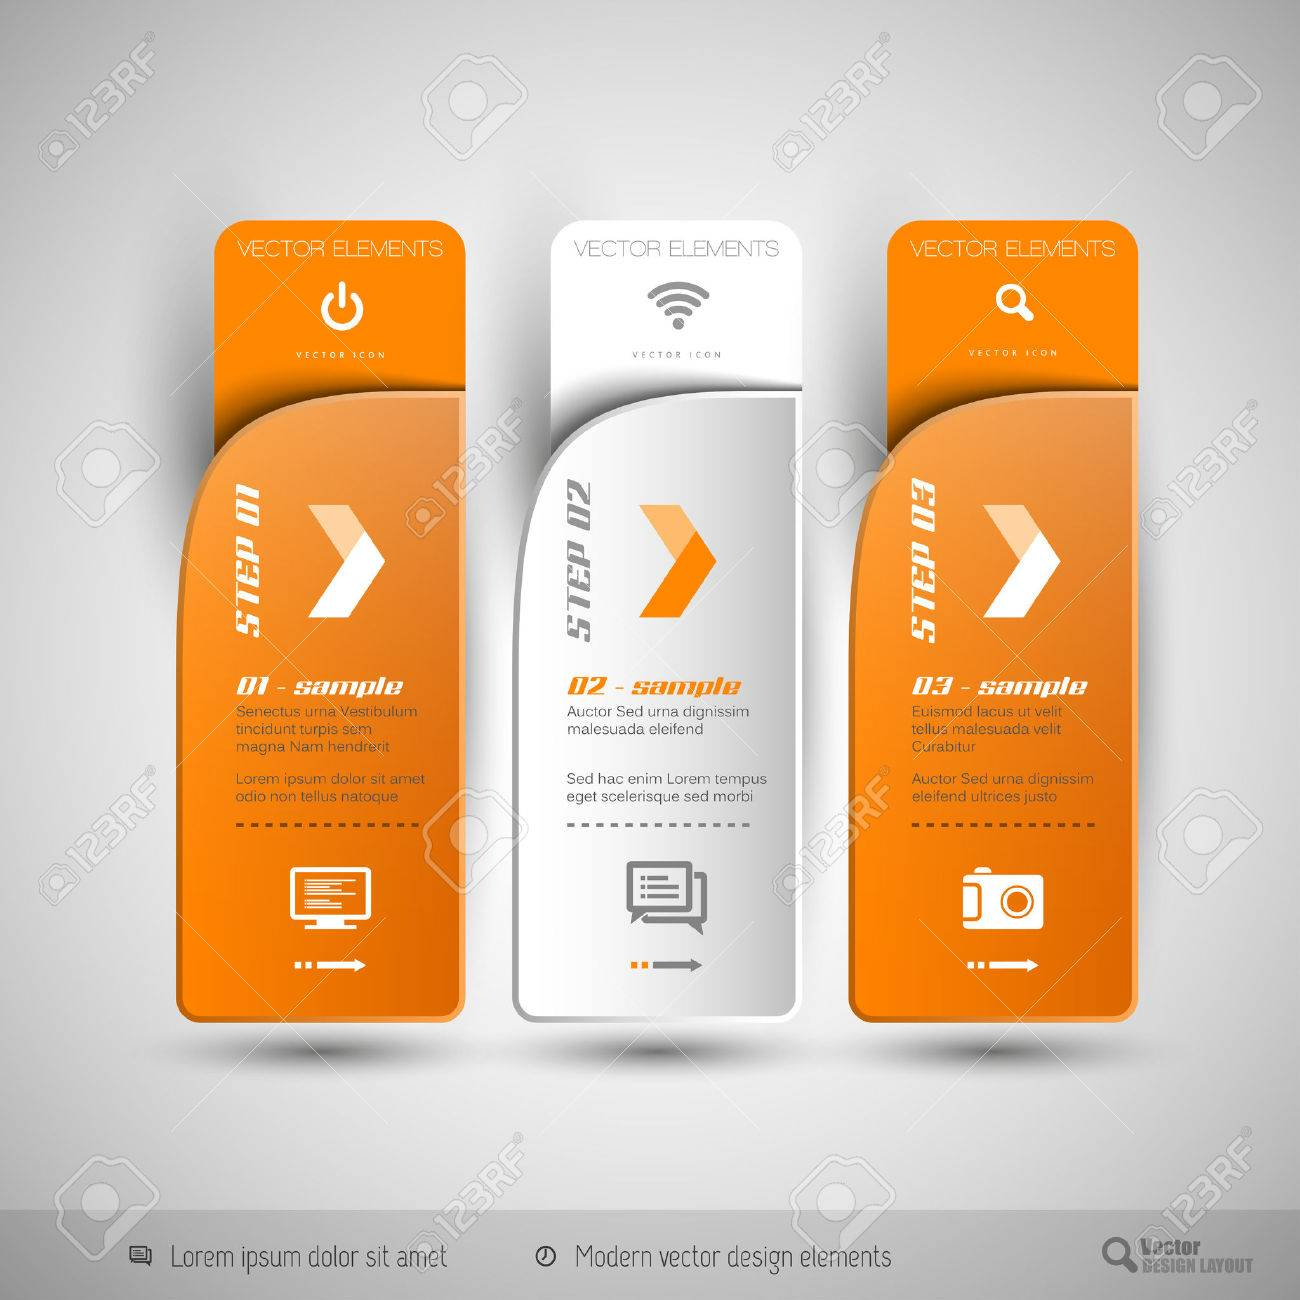 Modern design elements for infographics, print layout, web pages. - 42658666